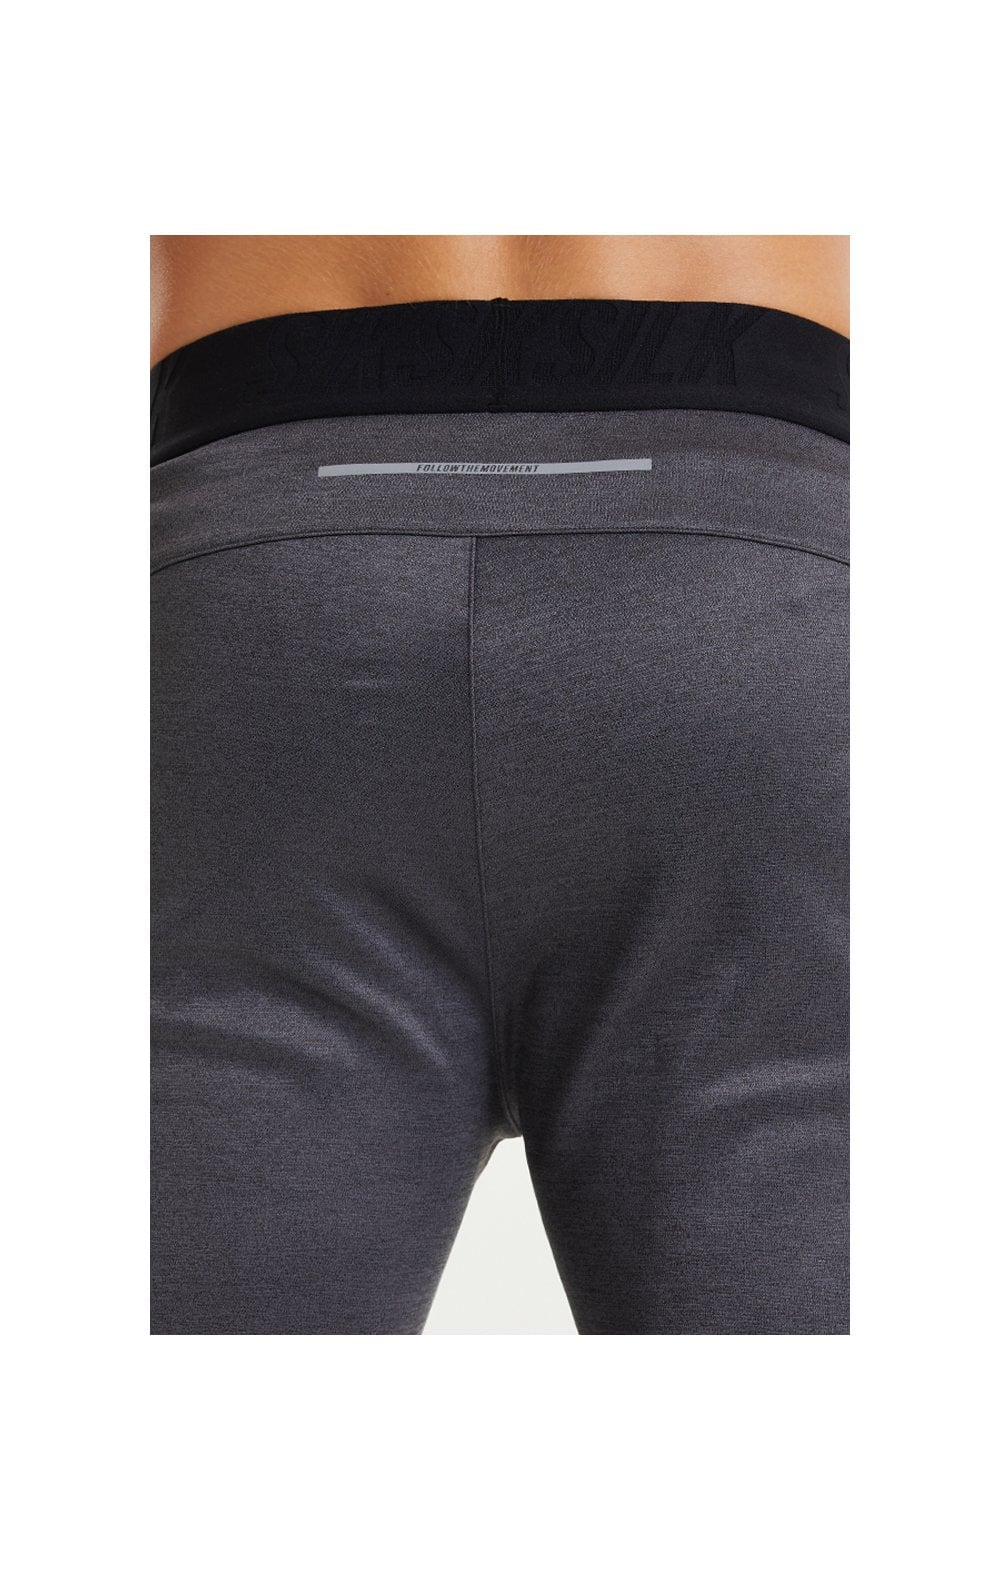 Load image into Gallery viewer, SikSilk Rapid Pants – Charcoal Marl (6)